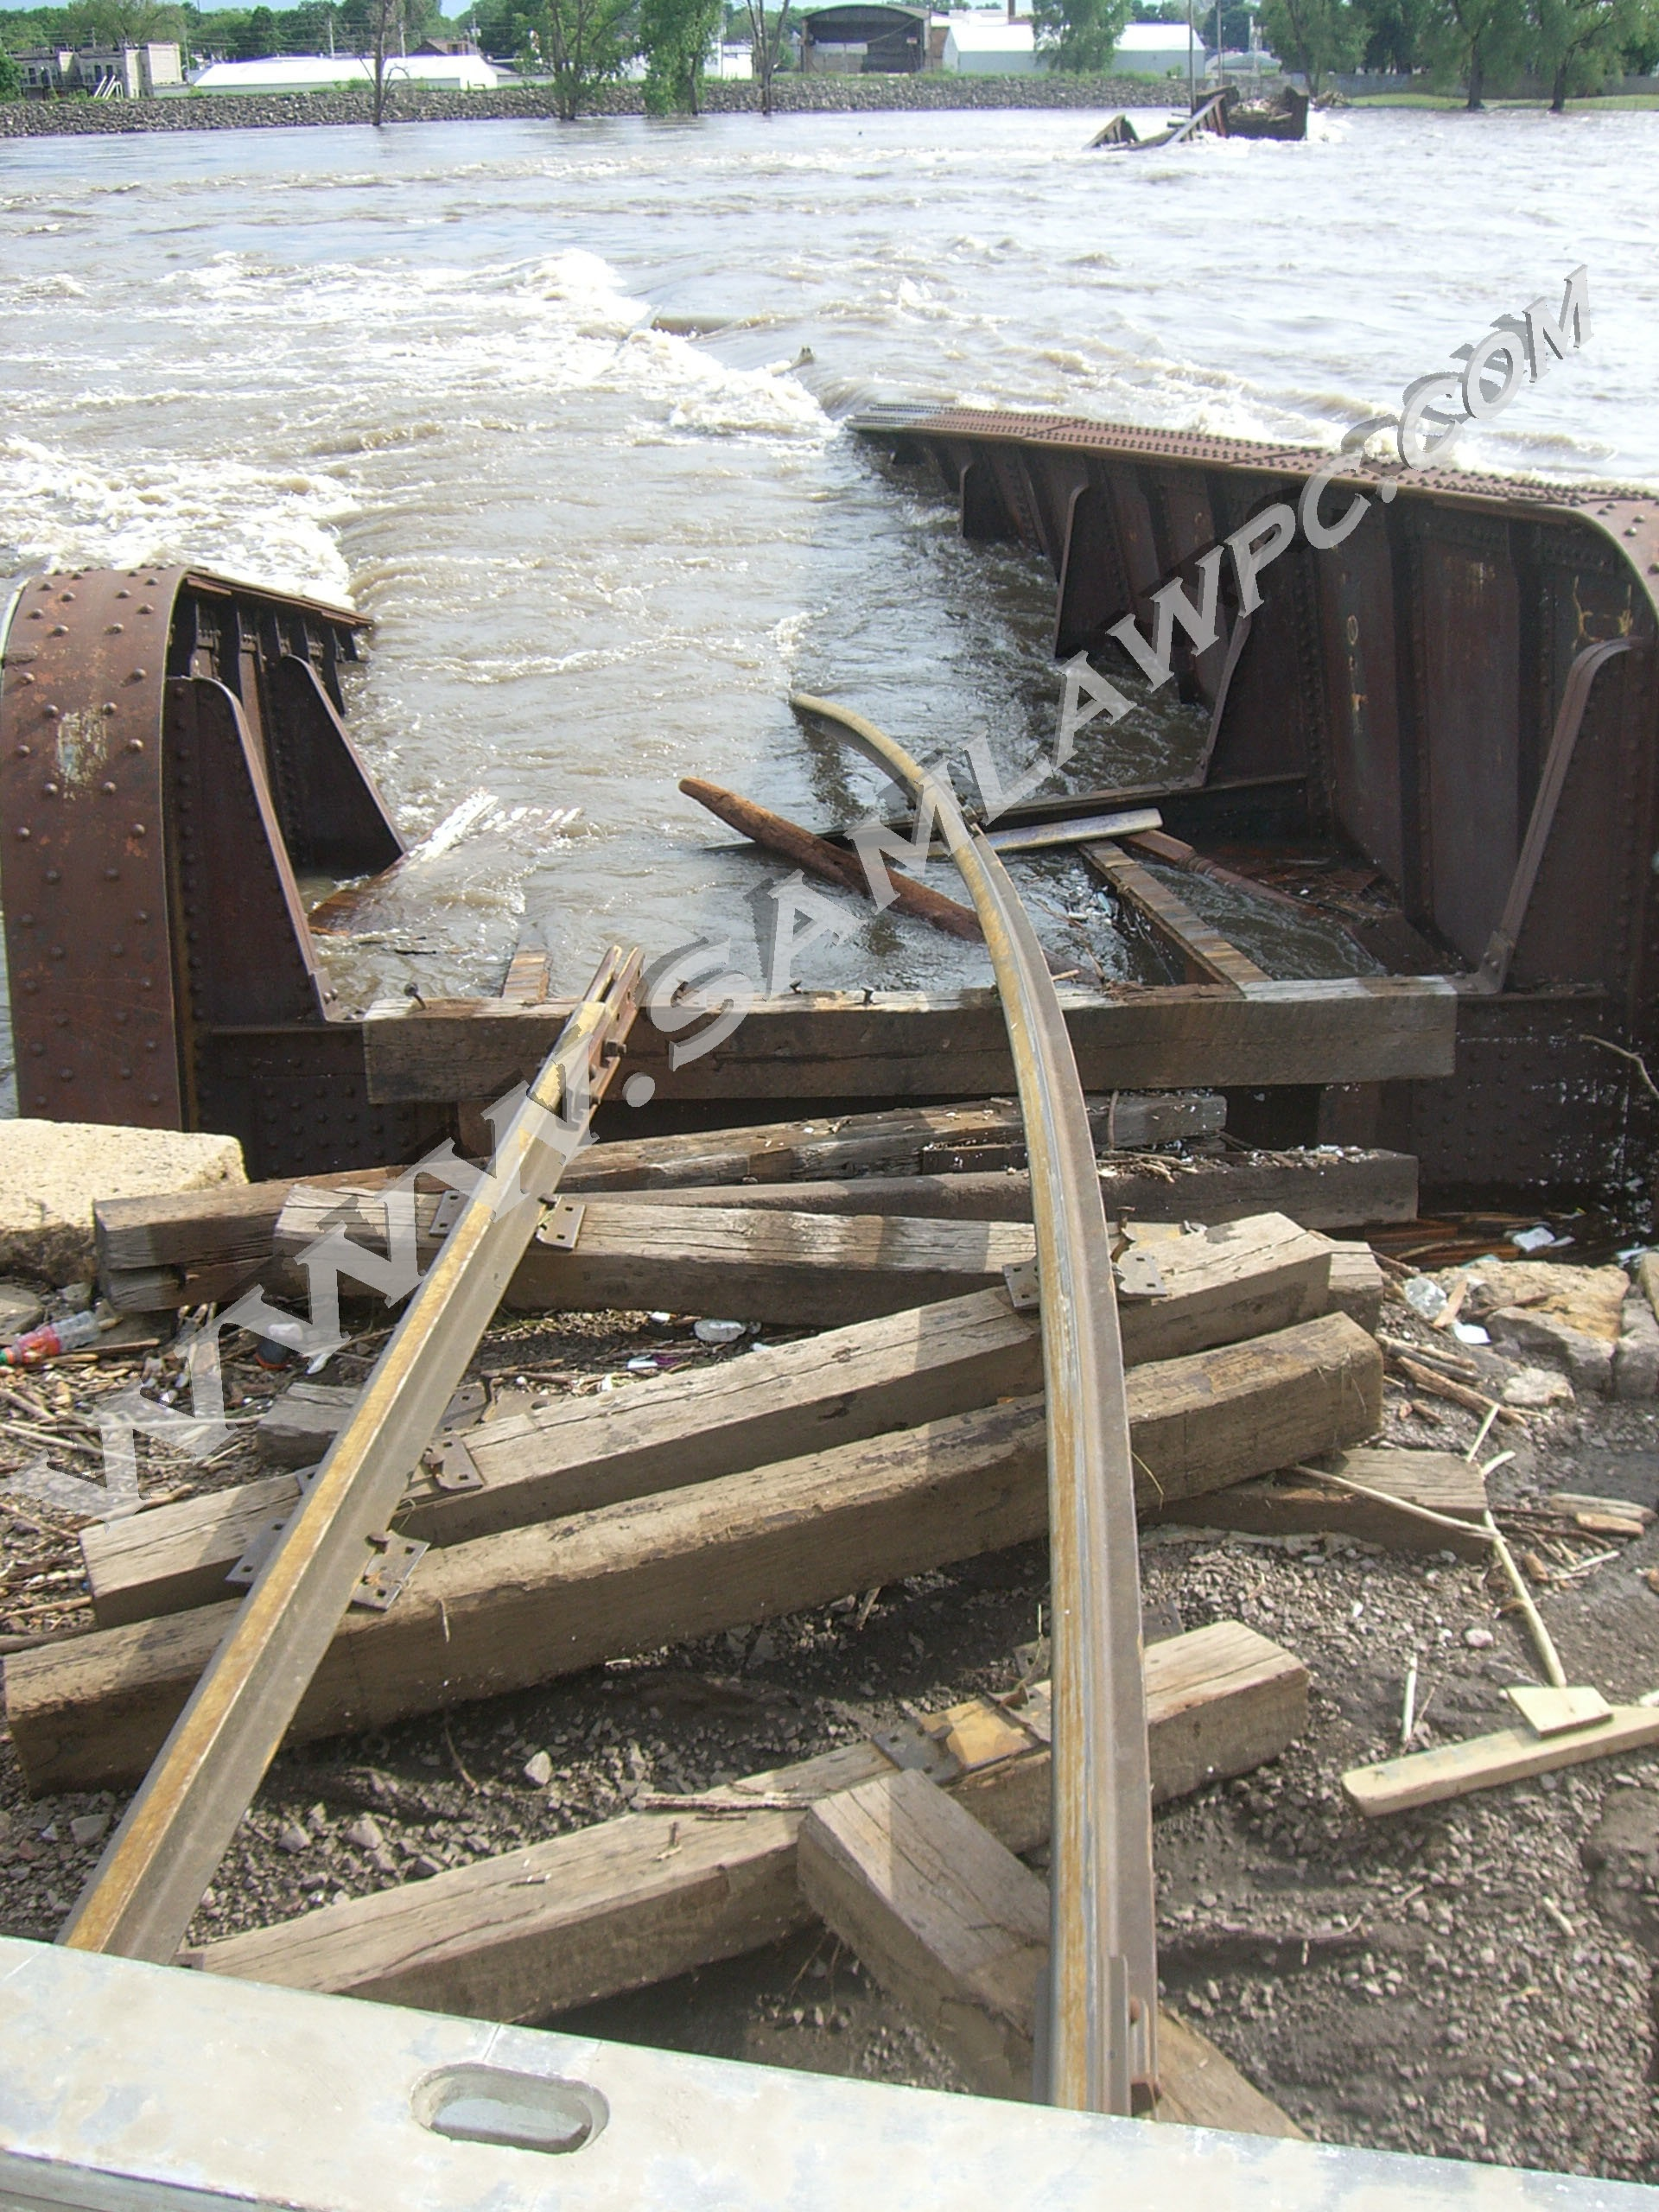 2008 Flood Caused by Three Large Man-Made Obstructions in Waterloo, Cedar Rapids, and Iowa City, Not Rainfall